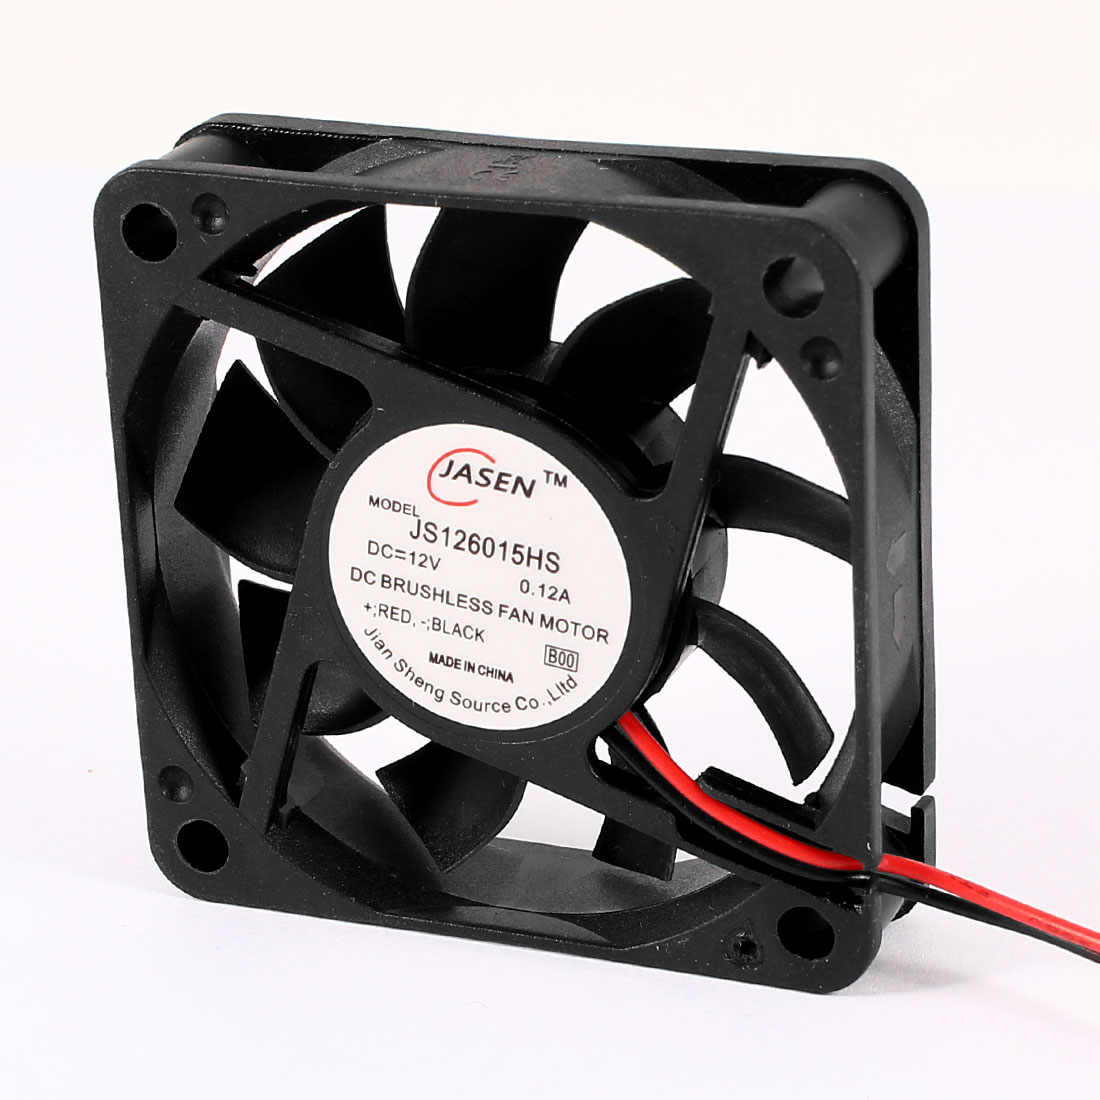 70mmx70mmx15mm DC 12V 0.12A Brushless Motor PC Case Cooling Fan Cooler